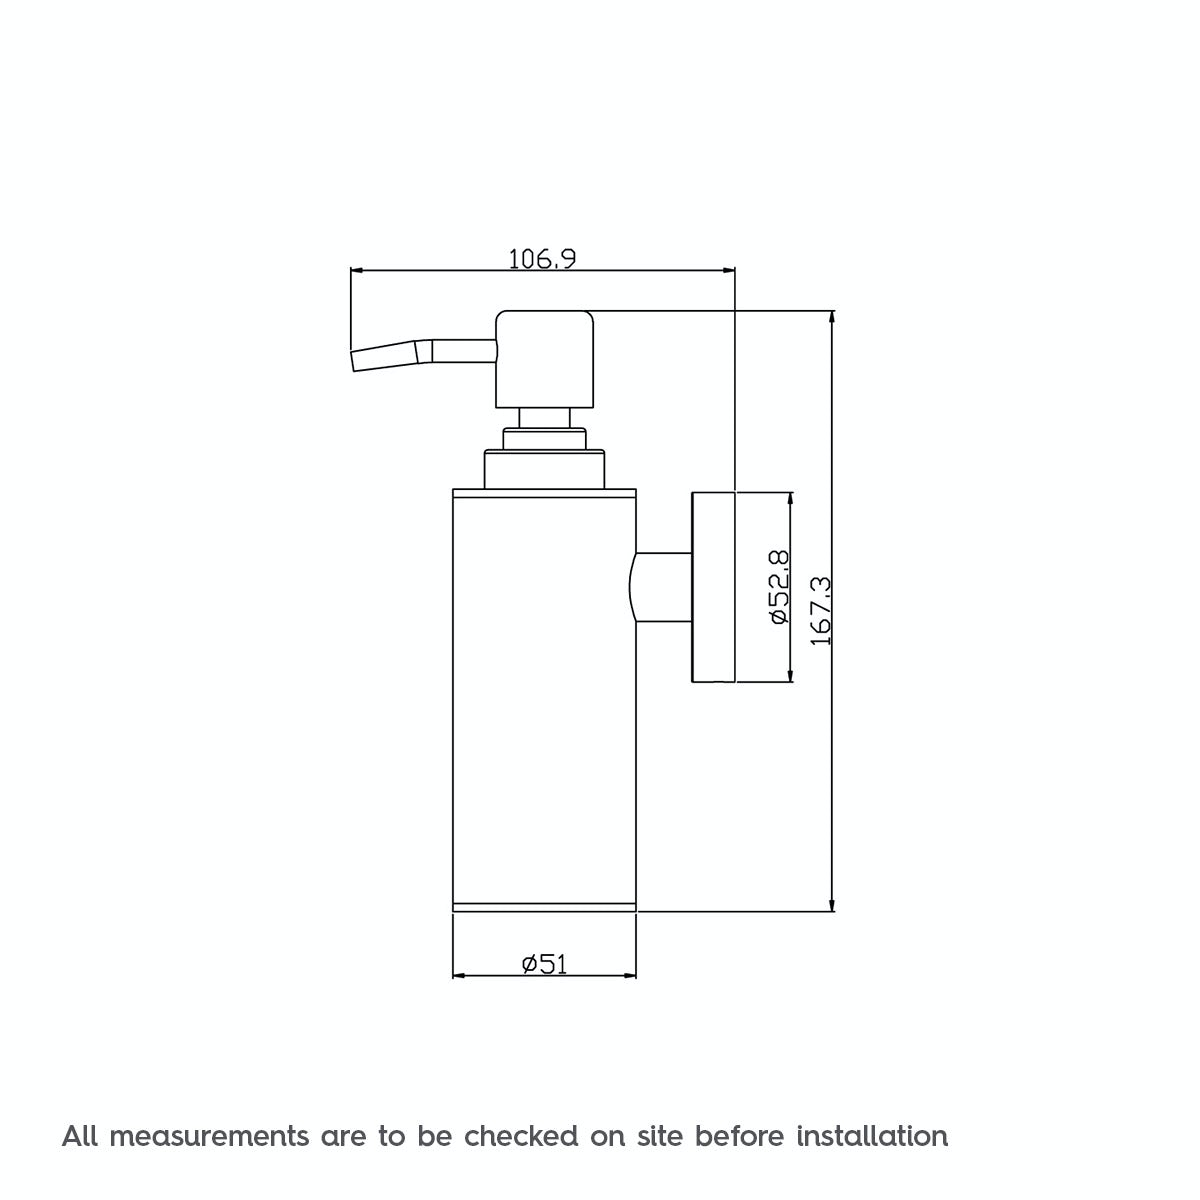 Dimensions for Orchard Options wall mounted slim stainless steel soap dispenser